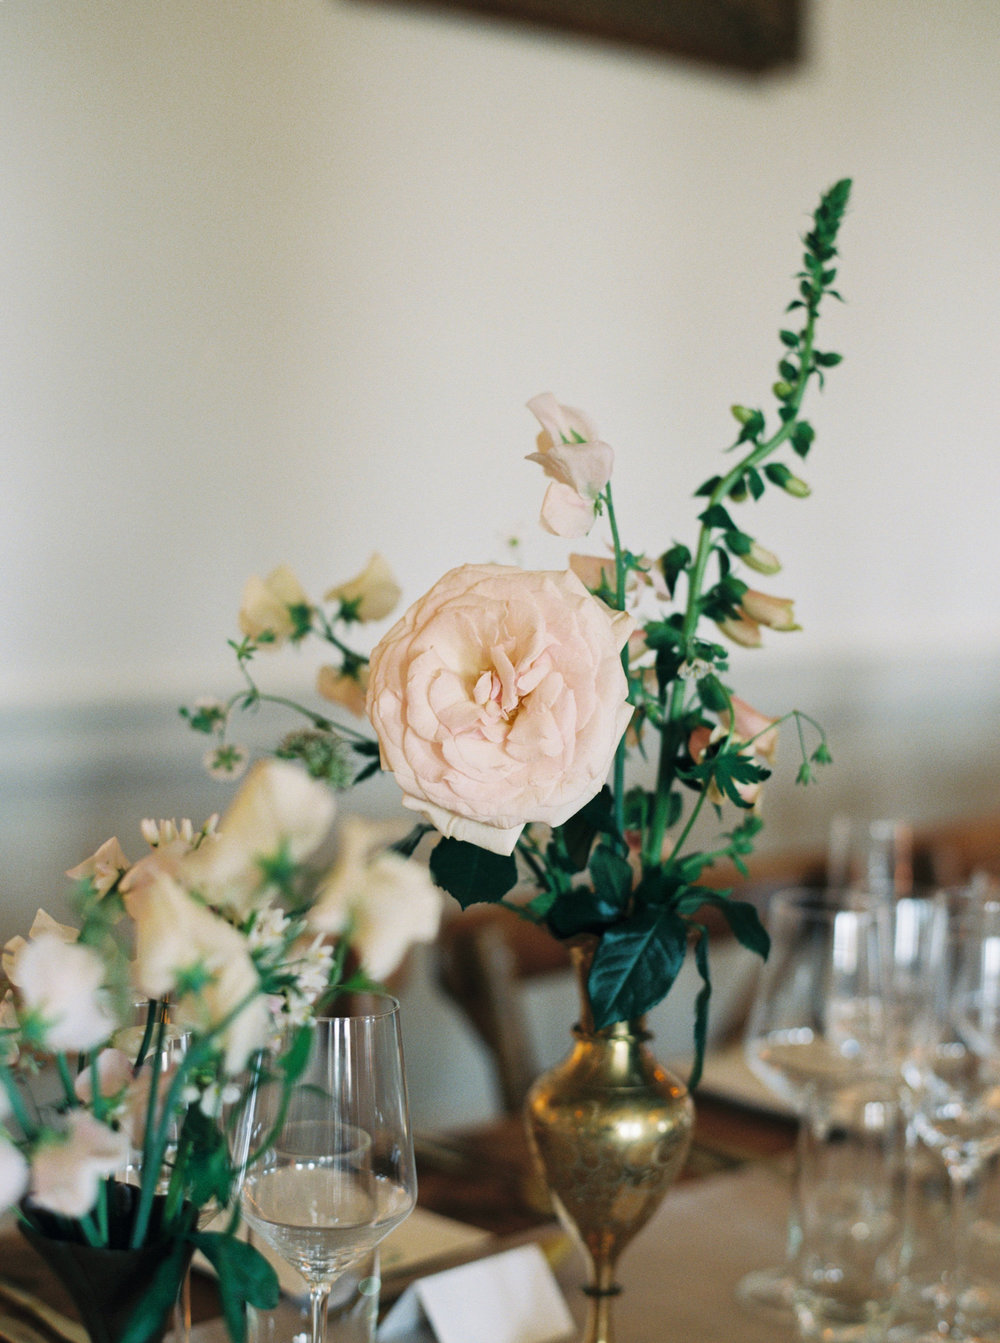 Lily & Sage | Jennifer & Timothy's English Country Manor Wedding Soft Pink Pale Blue White and Silver Toned Green Neutral Tones American Bride North Cadbury Court | Nicole Colwell Photography 1229.jpg